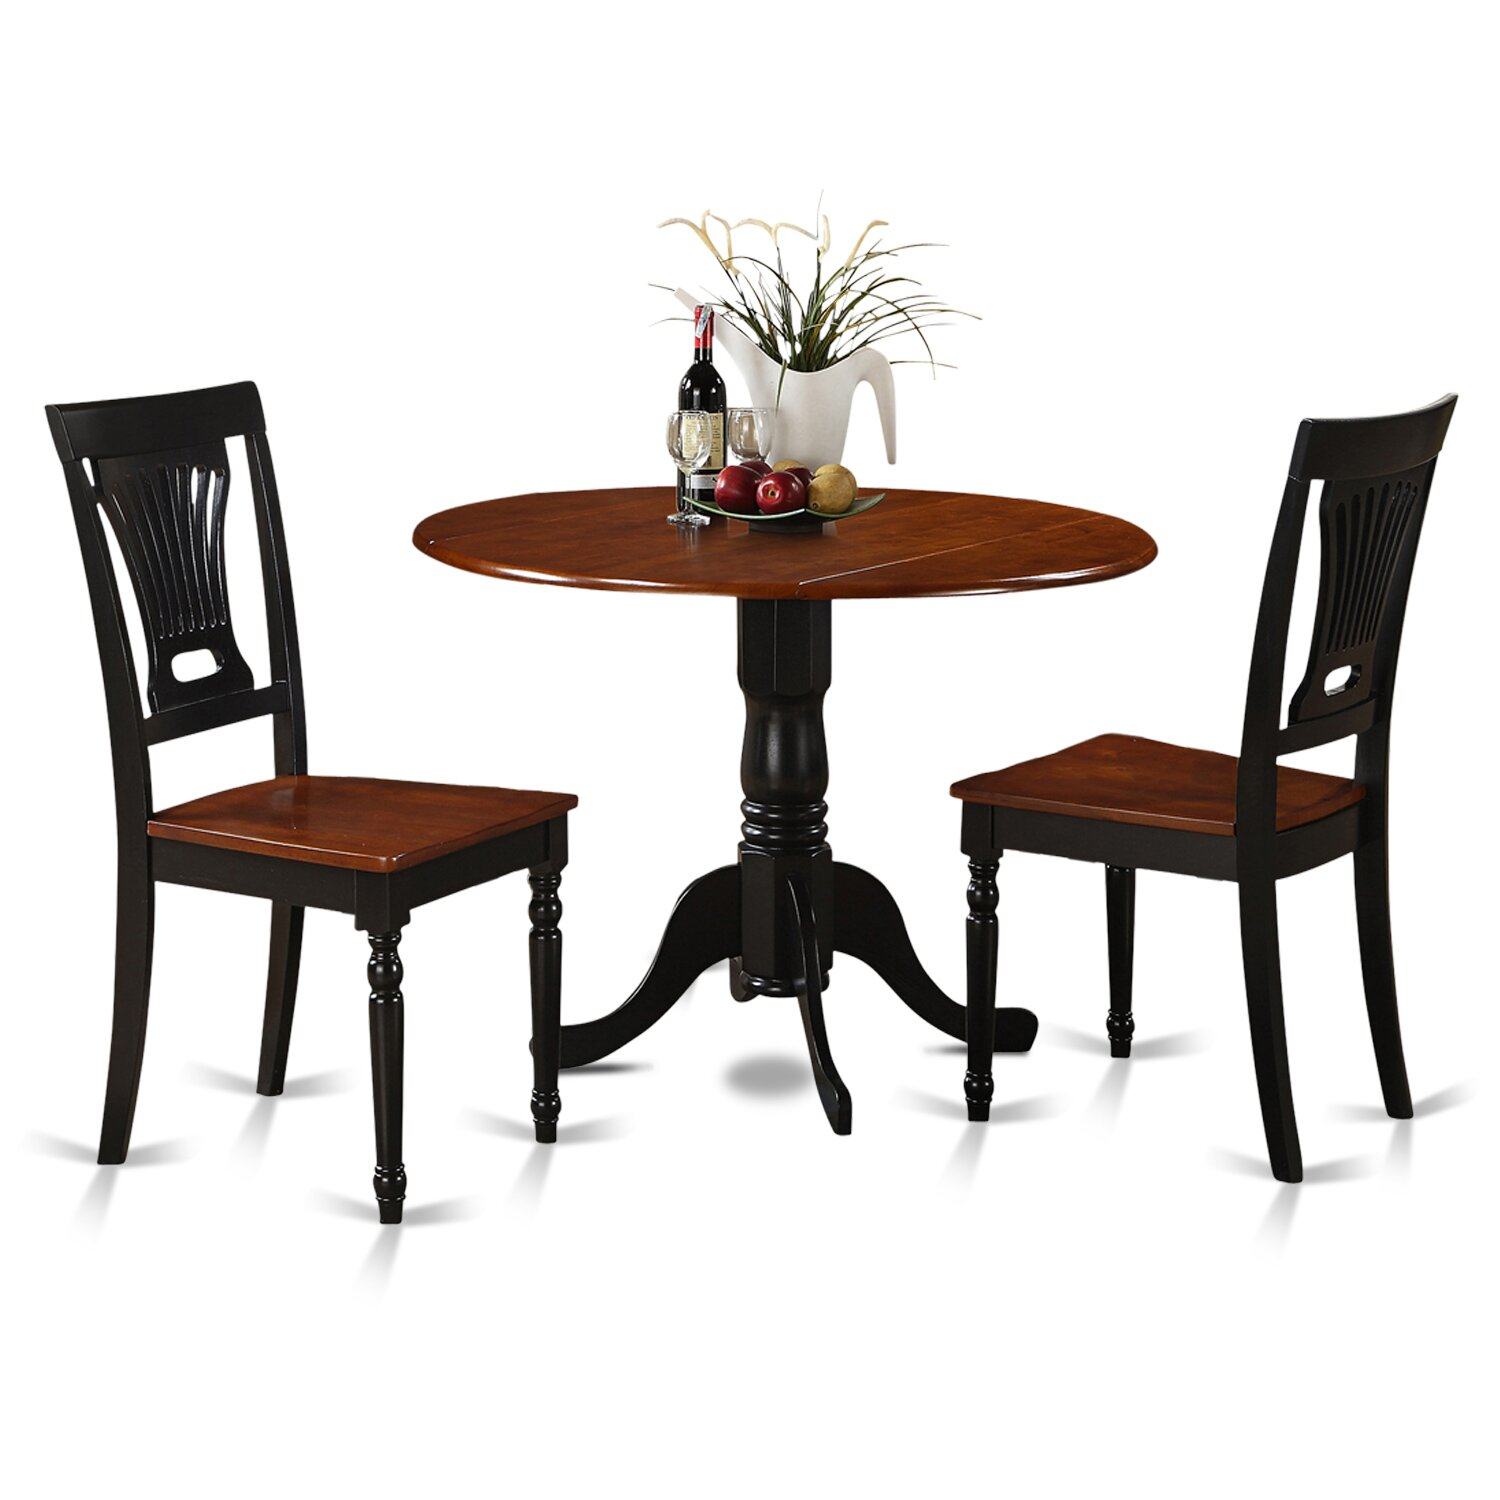 Wooden importers dublin 3 piece dining set reviews wayfair for Kitchen dining room furniture